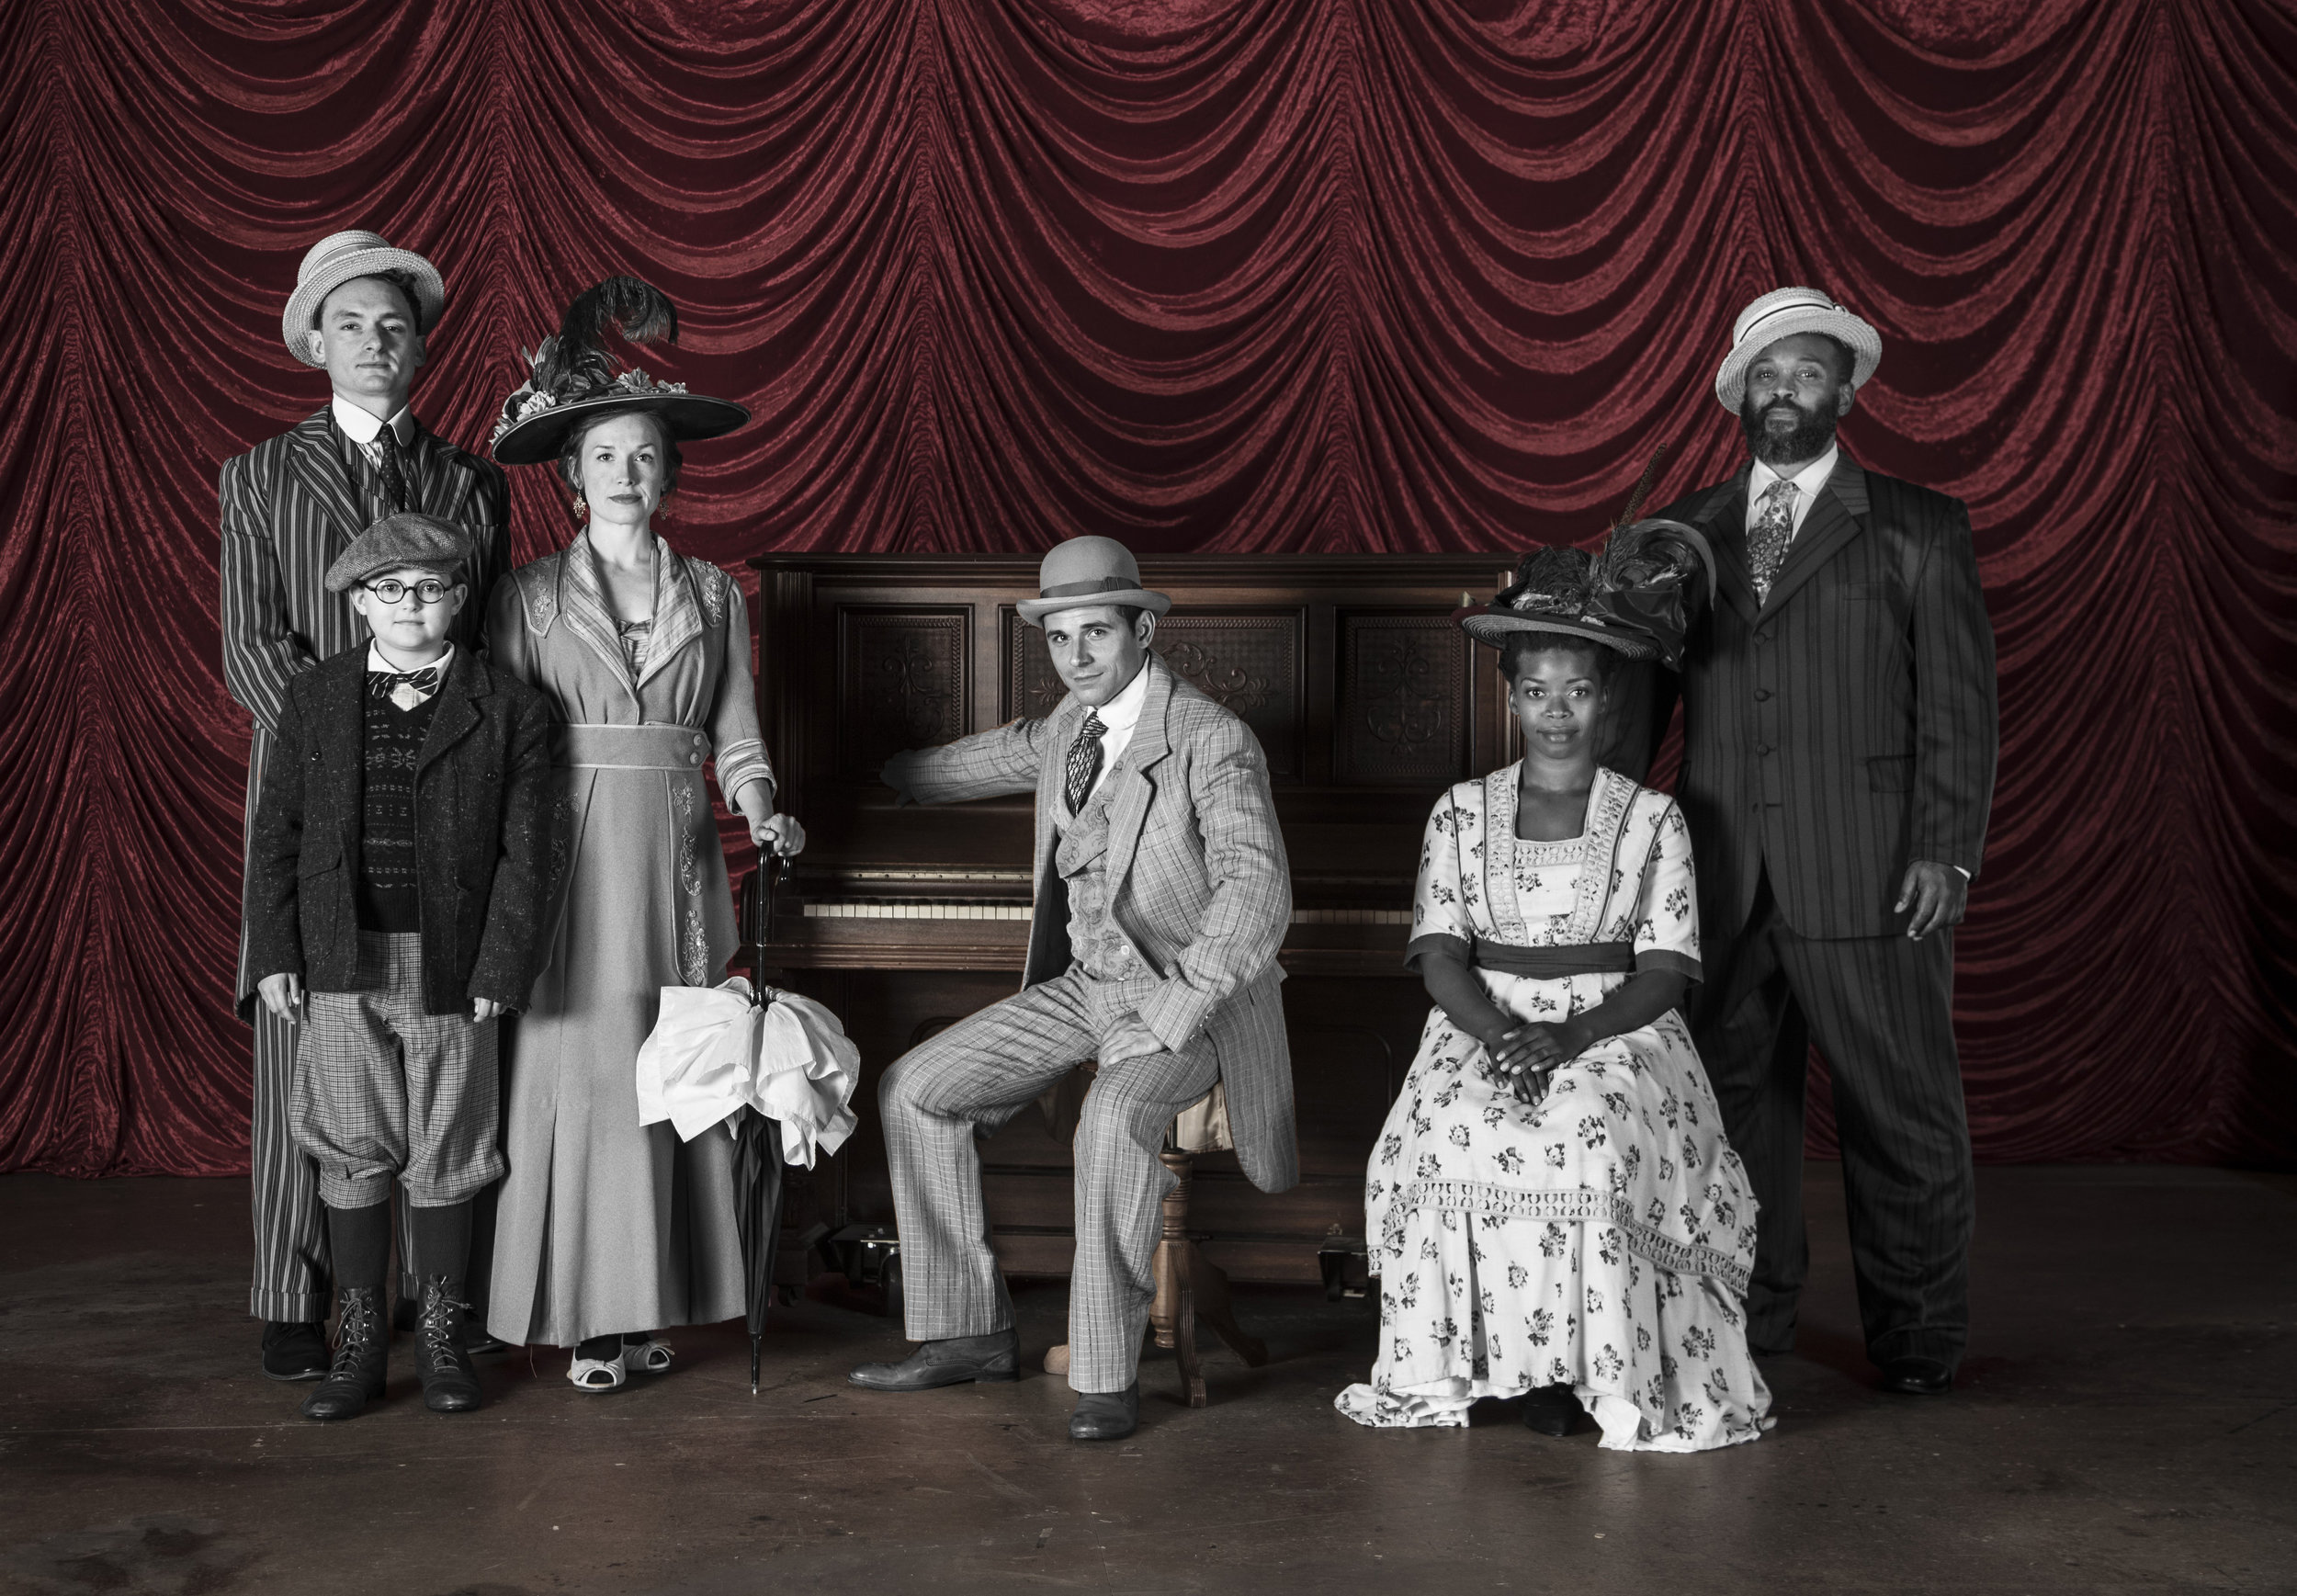 Theater Latté Da's RAGTIME. Photo by Joe Dickie. Featuring (from left to right): Riley McNutt, Soren Miller, Britta Ollmann, Sasha Andreev, Traci Allen Shannon, and Andre Shoals.